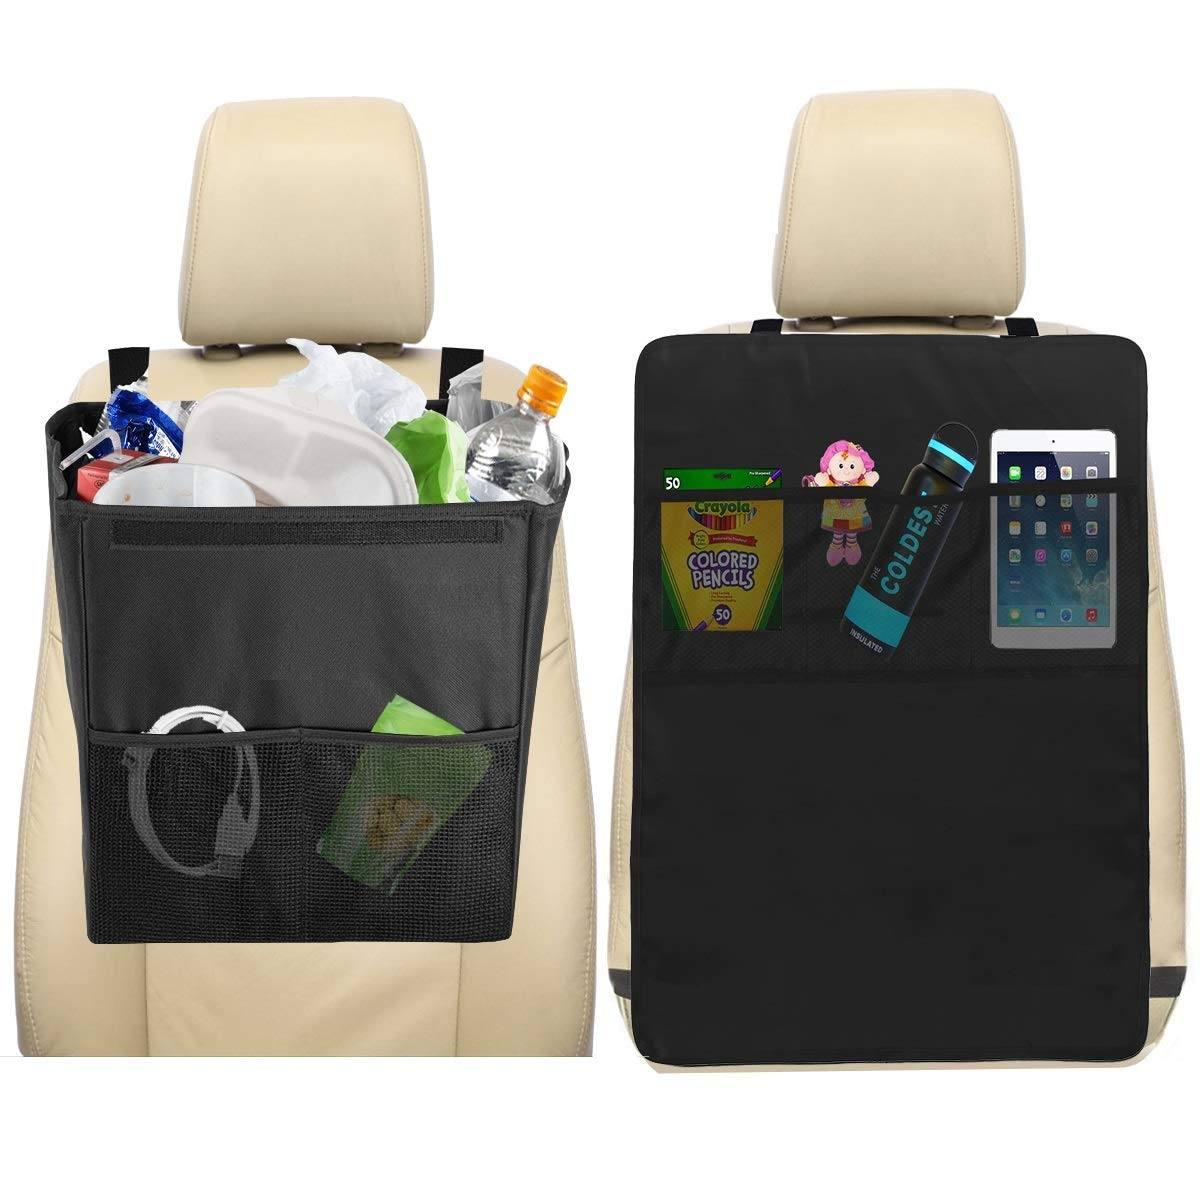 lebogner Car Trash Can + Kick Mat Seat Back Protector with 3 Organizer Pockets for Storage, Kick Guard Seat Saver, X-Large 100% Leakproof Car Garbage Bin, Perfect for Car Seat Headrest Or Car Floor trash can and kick mat protector